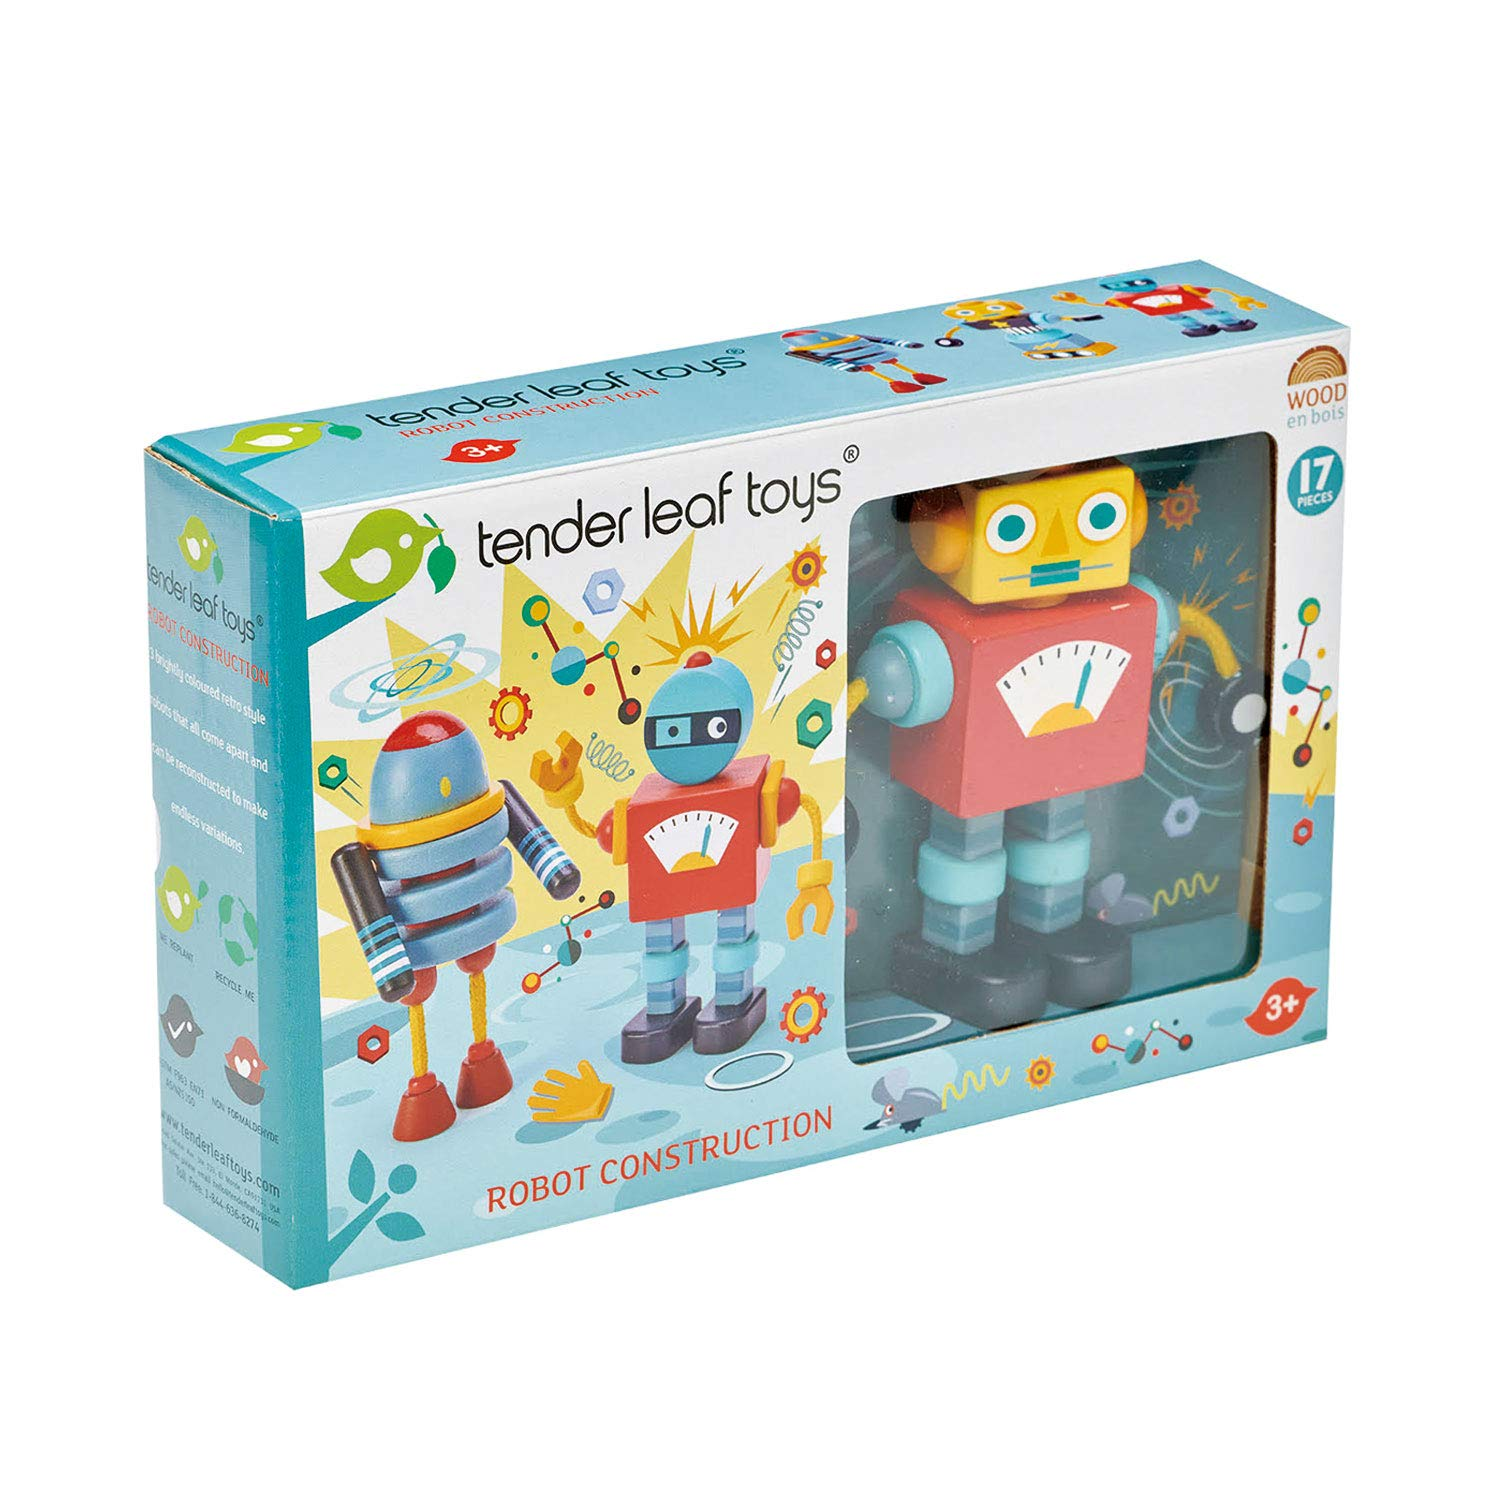 Robot Construction Tender Leaf Toys 17 Pieces Wooden Construction Set to Build and Stack 3 Robot in Endless Variations Develops Problem Solving Skills and Imaginative Play for Children 3+